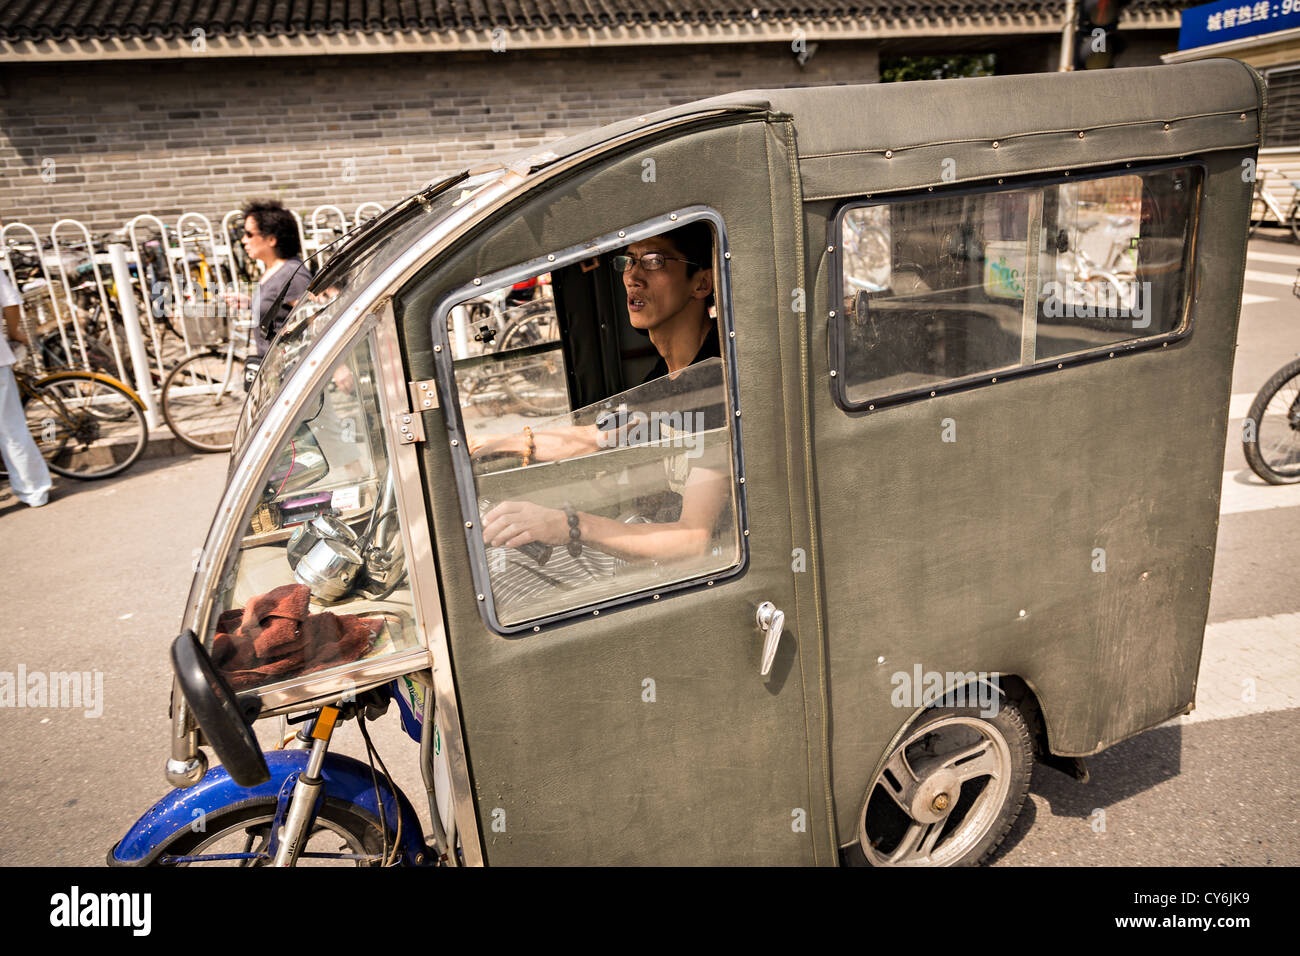 An enclosed scooter during summer in Beijing, China - Stock Image